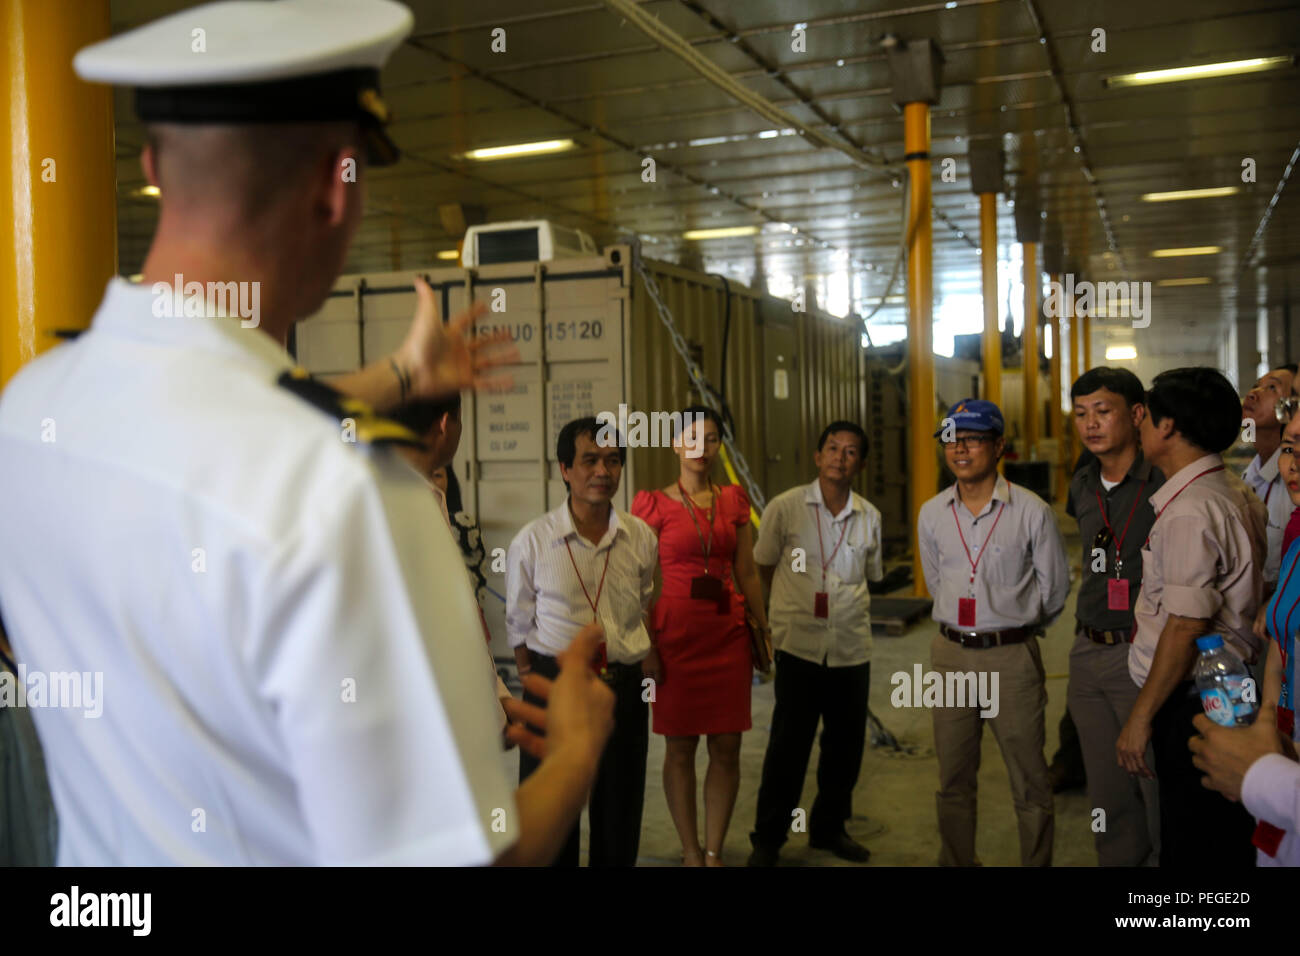 150818-M-GO800-008 DA NANG, Vietnam (August 18, 2015) – Lt. j.g. Mark Roach explains to local Vietnamese officials the function of the mission bay aboard the Military Sealift Command joint high speed vessel USNS Millinocket (JHSV 3) during a ship tour Aug. 18. Task Force Forager, embarked aboard the Millinocket  is serving as the secondary platform for Pacific Partnership, led by an expeditionary command element from the Navy's 30th Naval Construction Regiment (30 NCR) from Port Hueneme, Calif. Now in its 10th iteration, Pacific Partnership is the largest annual multilateral humanitarian assis - Stock Image